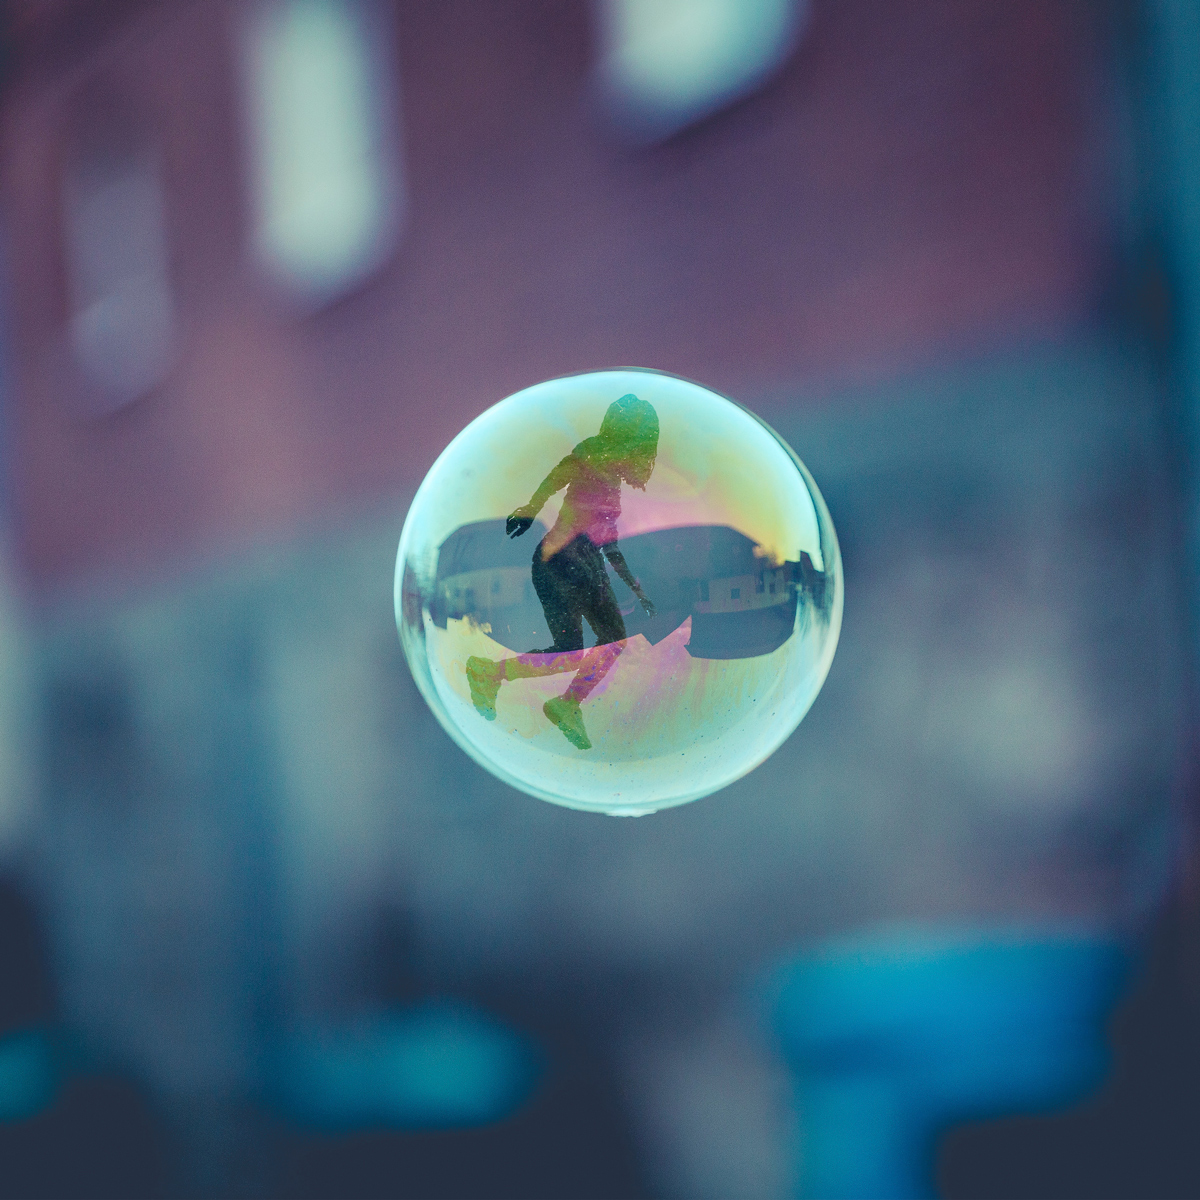 Girl reflection in bubble